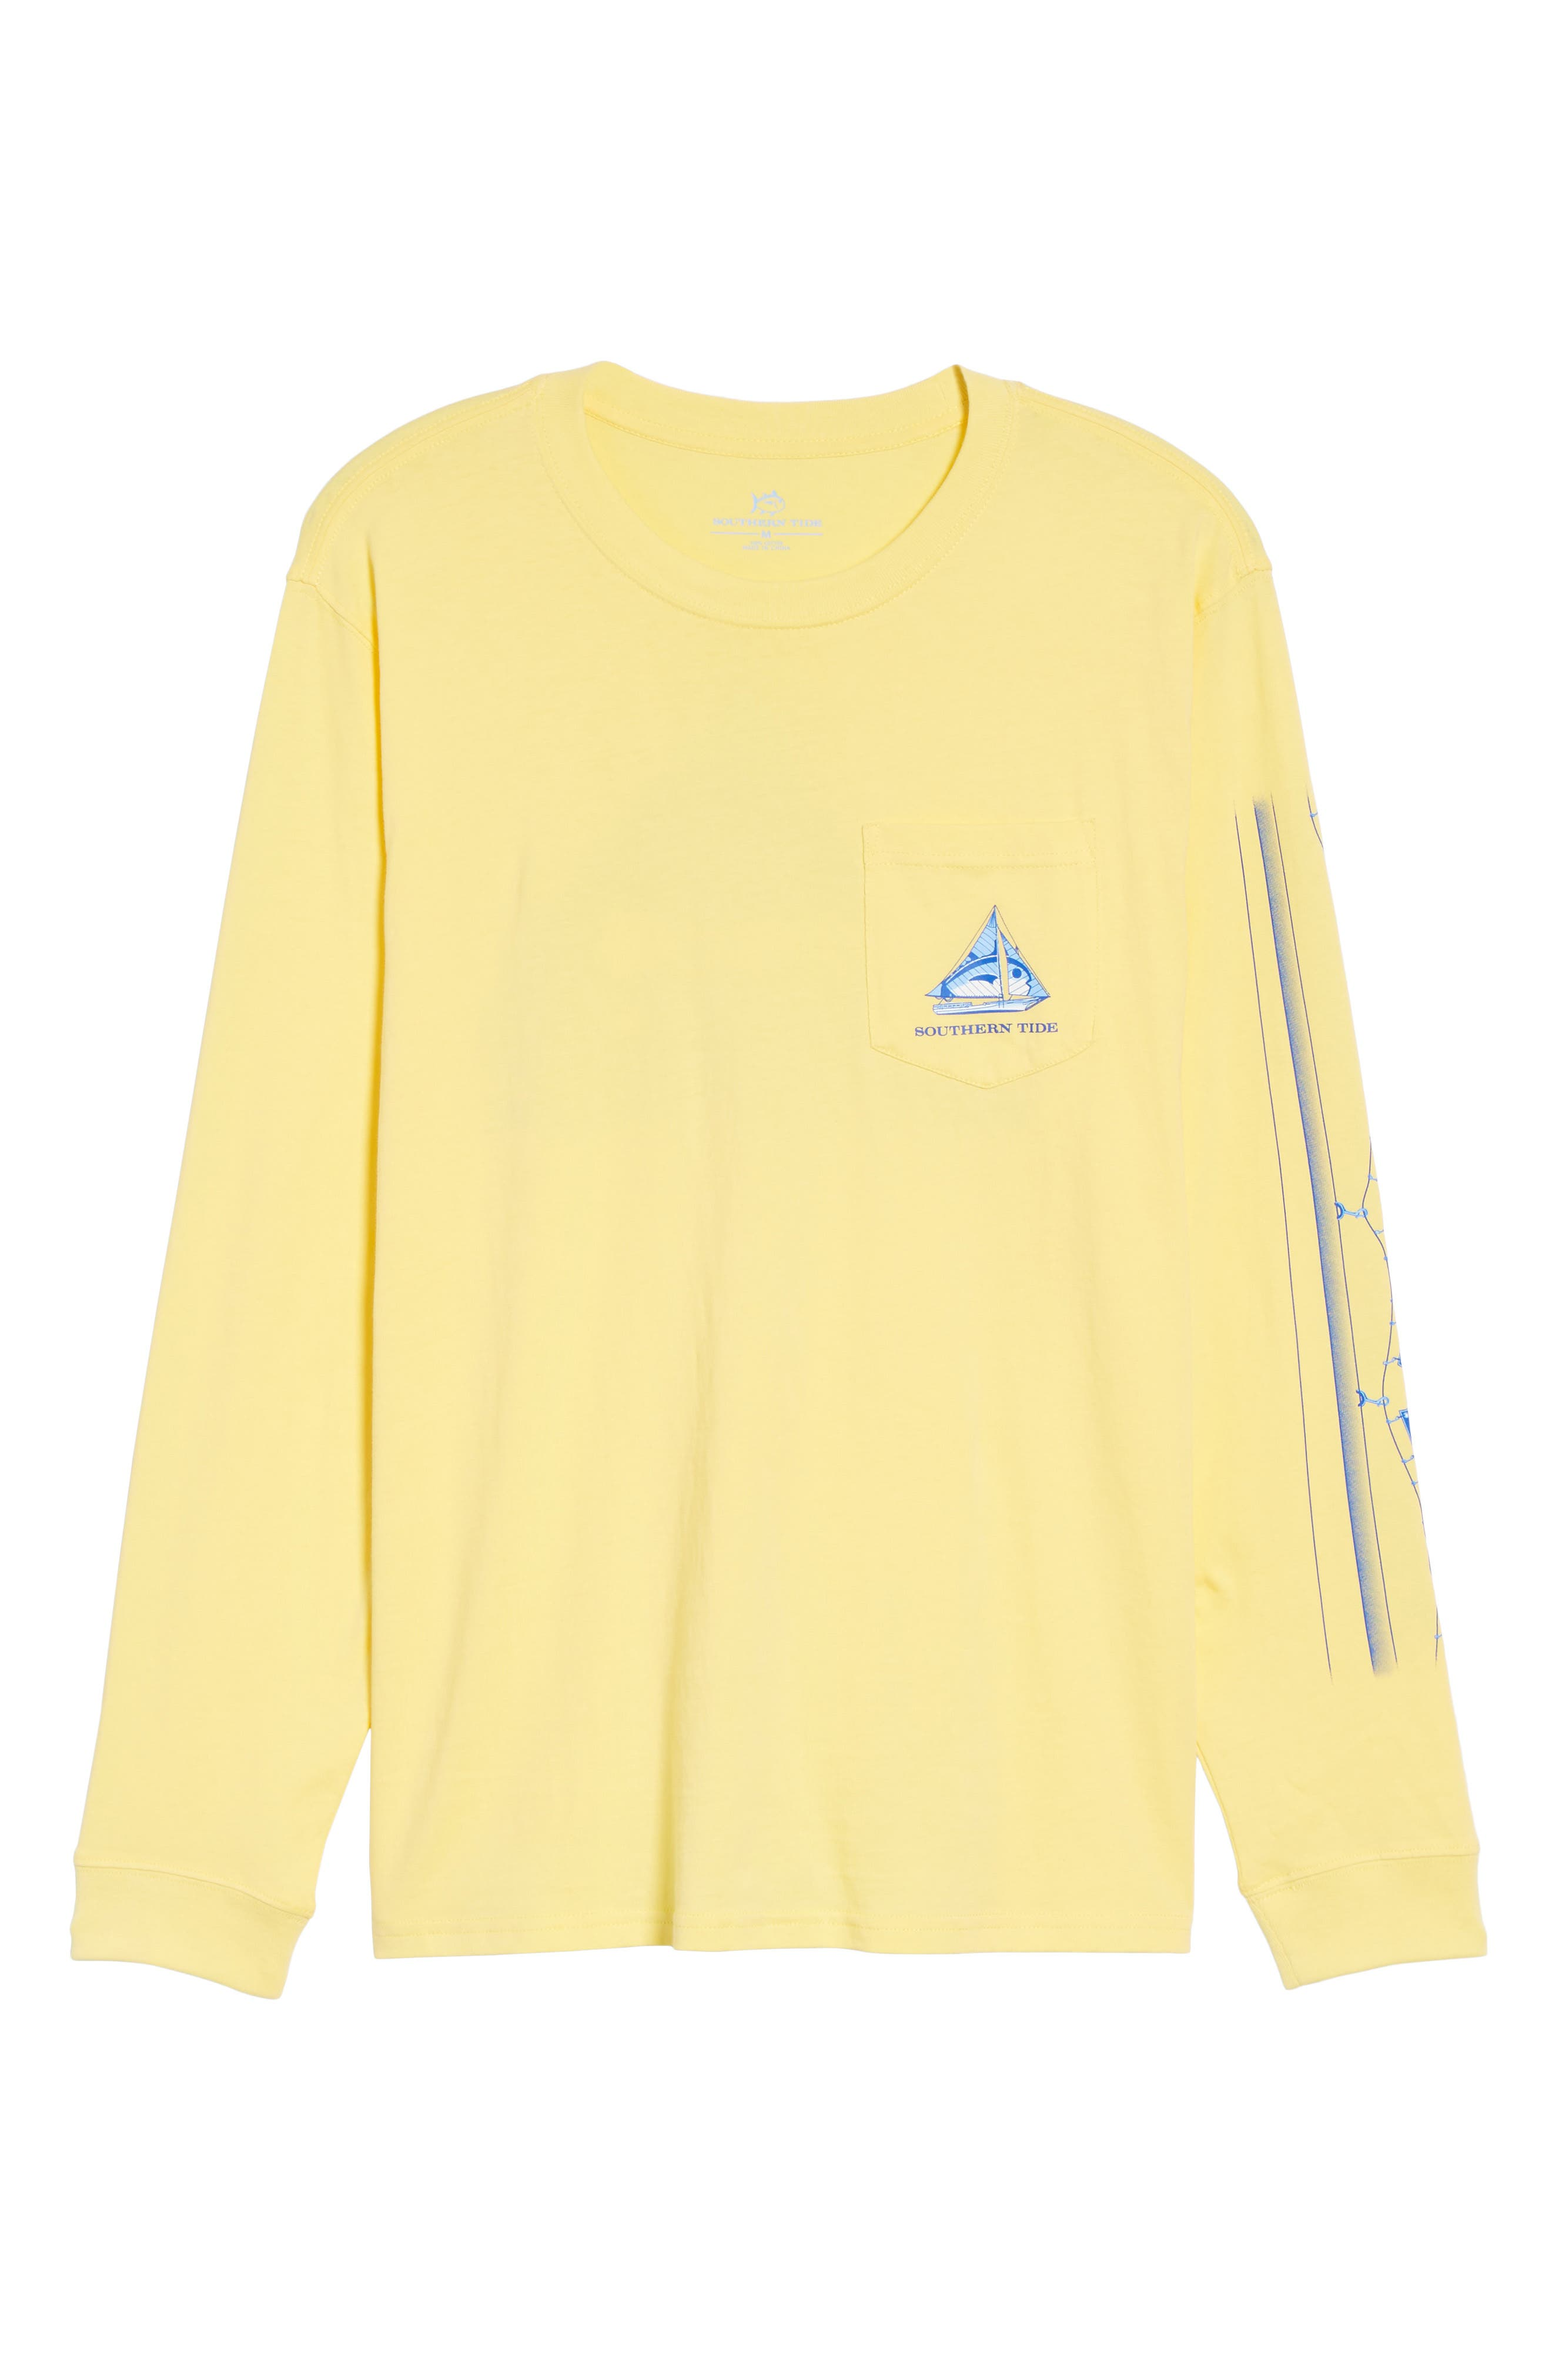 Sailboat Classic T-Shirt,                             Alternate thumbnail 6, color,                             706